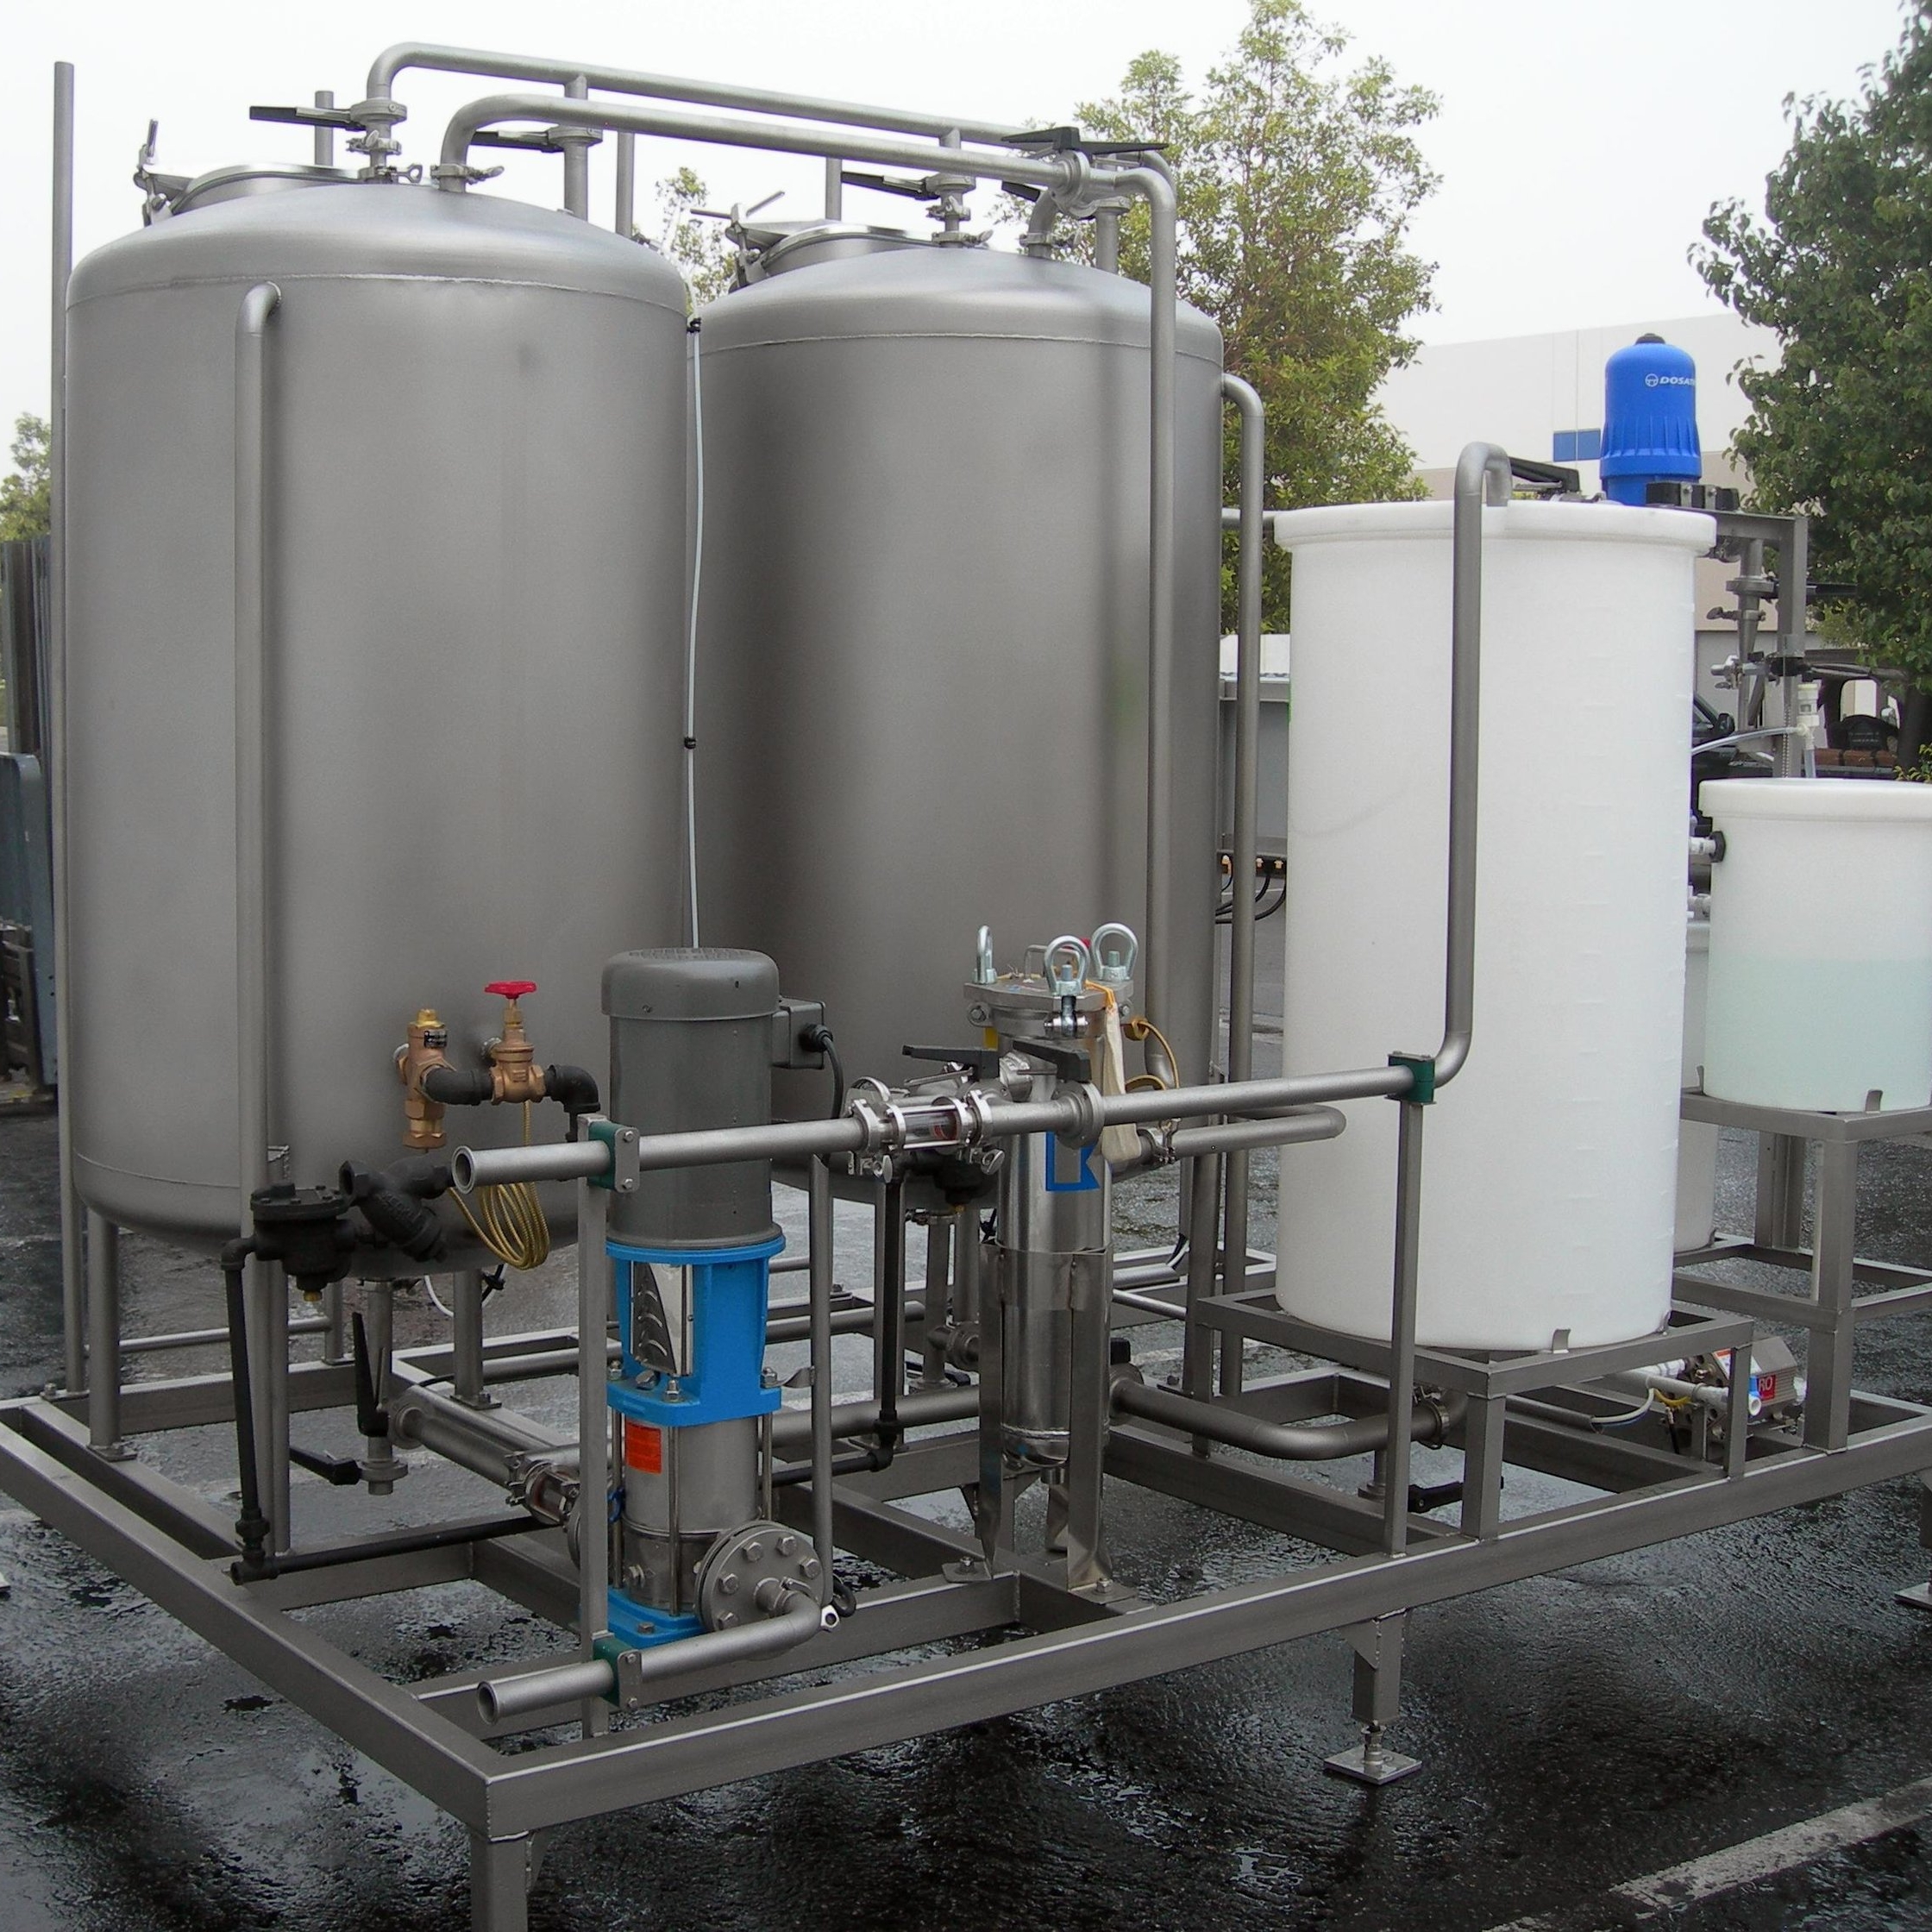 Static CIP Systems - For larger CIP/SIP demands, our static systems offer a large supply of heated detergent and precisely dosed sanitizer to the entire brewery.